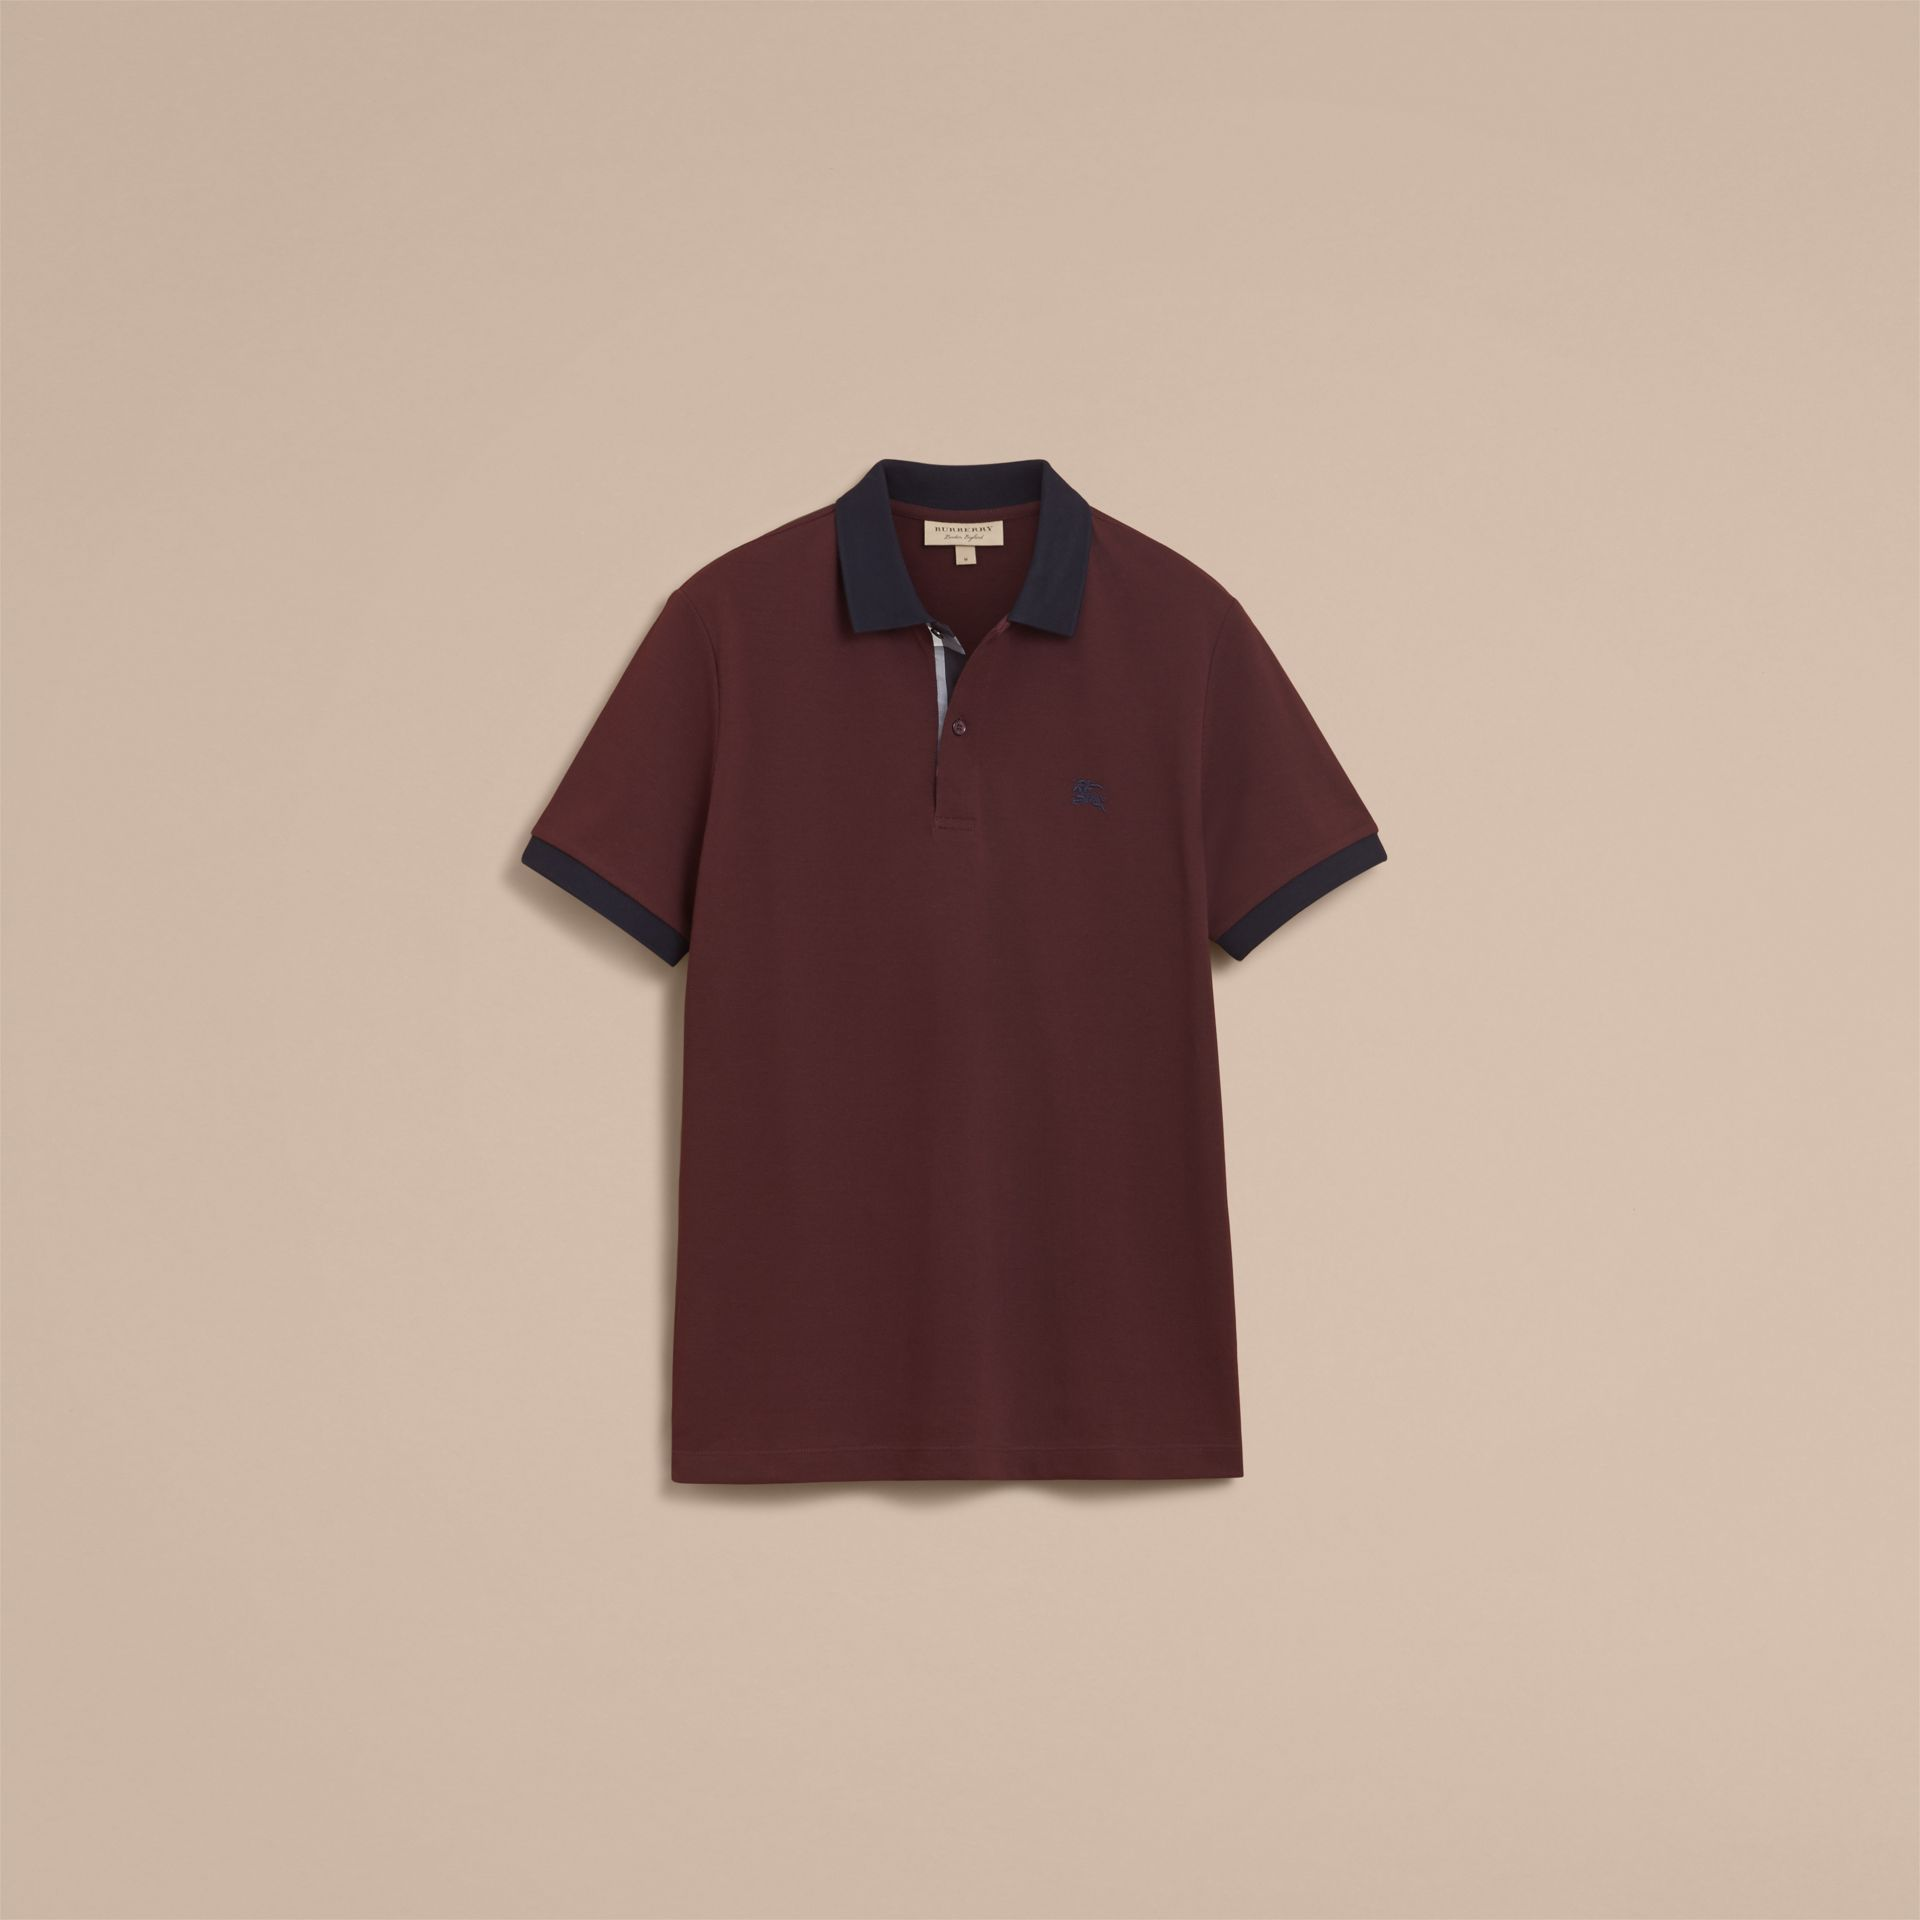 Two-tone Check Placket Cotton Piqué Polo Shirt in Deep Claret - Men | Burberry - gallery image 4